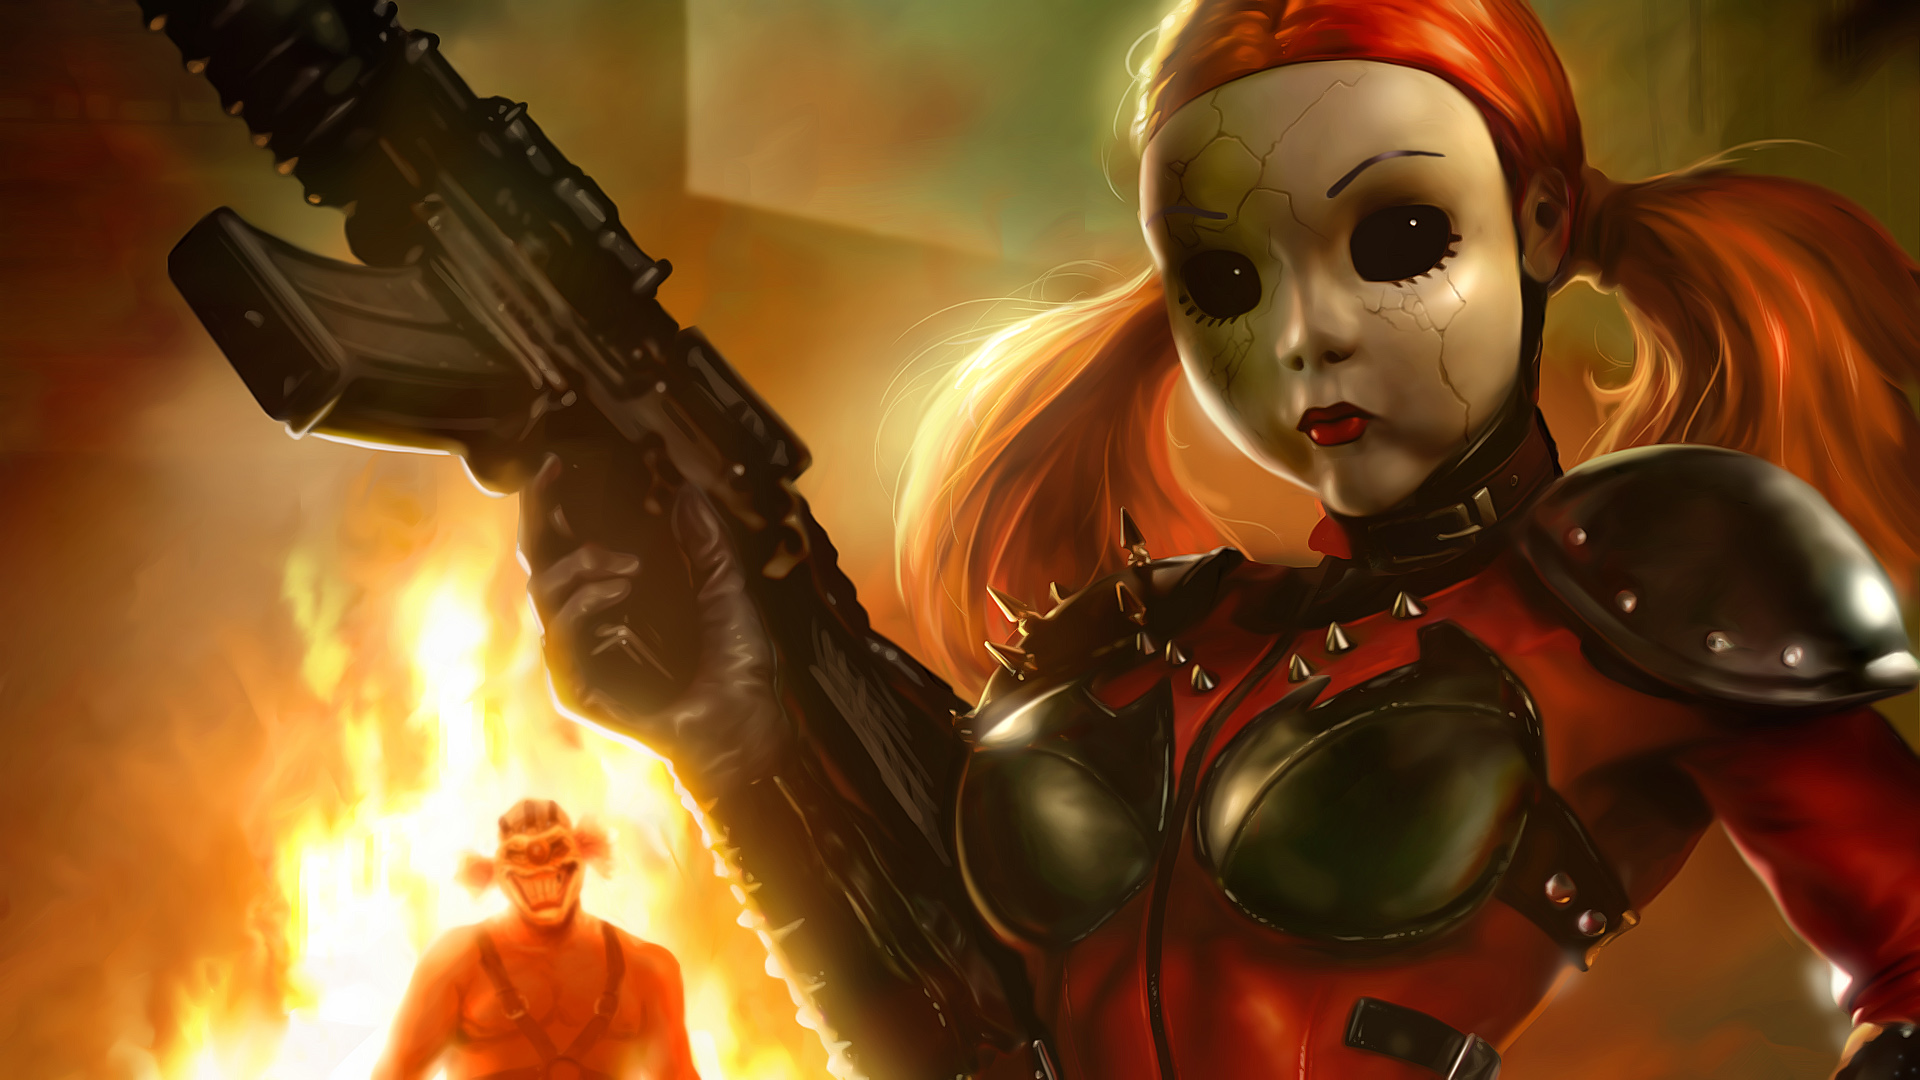 Twisted Metal - Dollface Full HD Wallpaper and Background Image ...